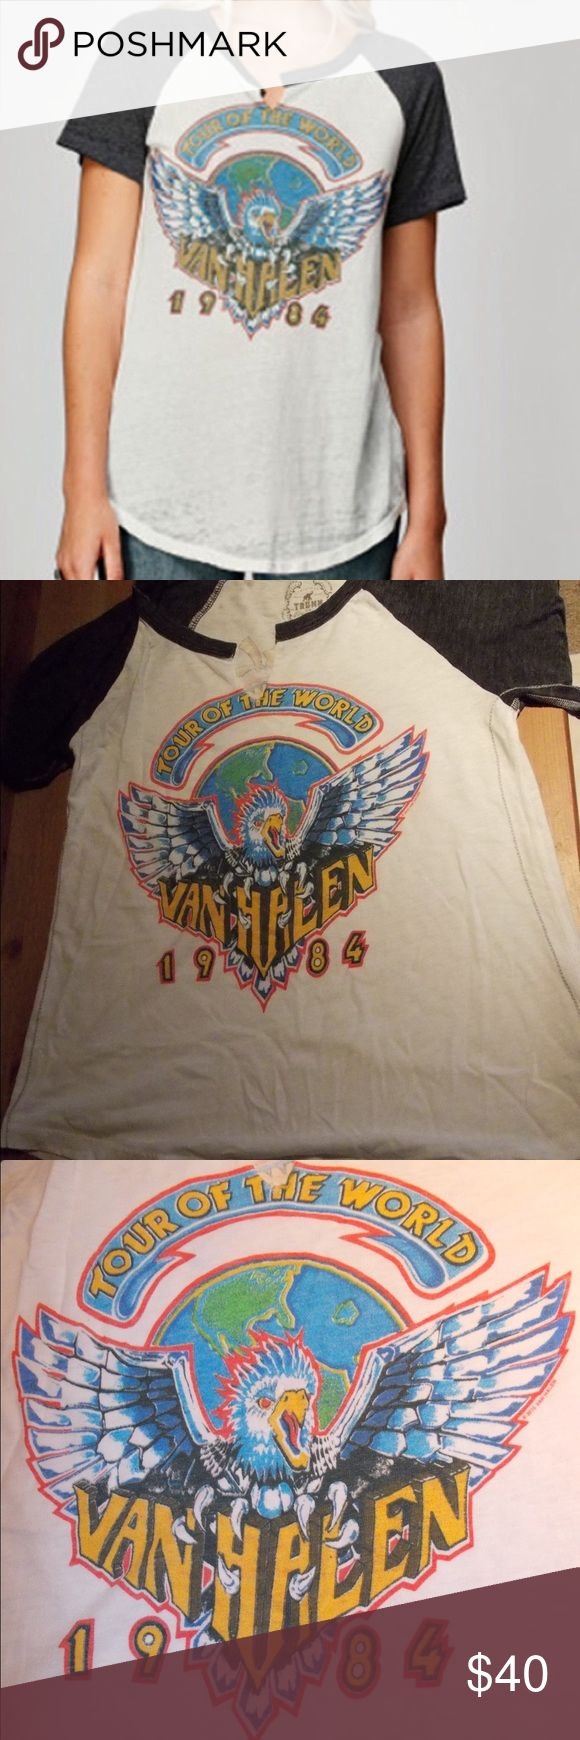 Van Halen Short Sleeve Notch Ragen Tee The Van Halen 1984 World Tour logo appeared on the front of this shirt sleeve burnout slit throat raglan. The tour stops are on the back. Trunk trademark novelty side seem stitching and patch. No flaws to the shirt. Sleeves (neck to bottom) are 8 1/2 inches and the shirt is 17 1/4 inches long. 50% polyester 37% cotton 13% rayon. Trunk Tops Tees - Short Sleeve